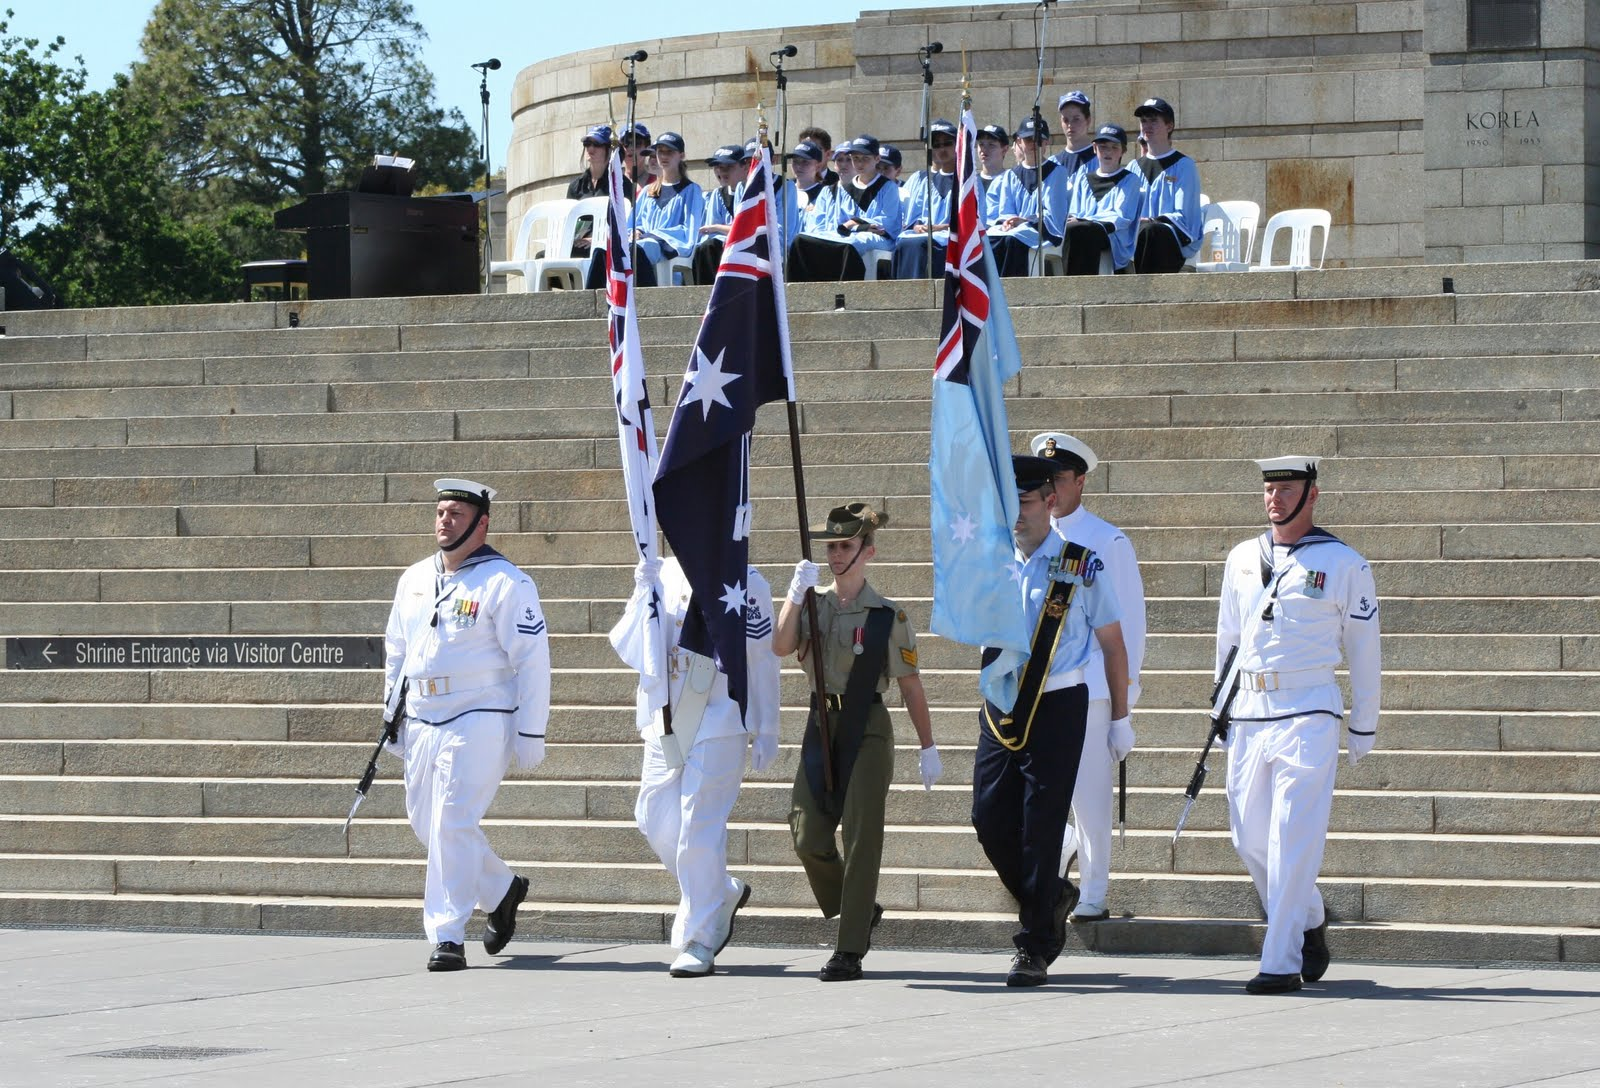 Veterans day 2019 date in Melbourne